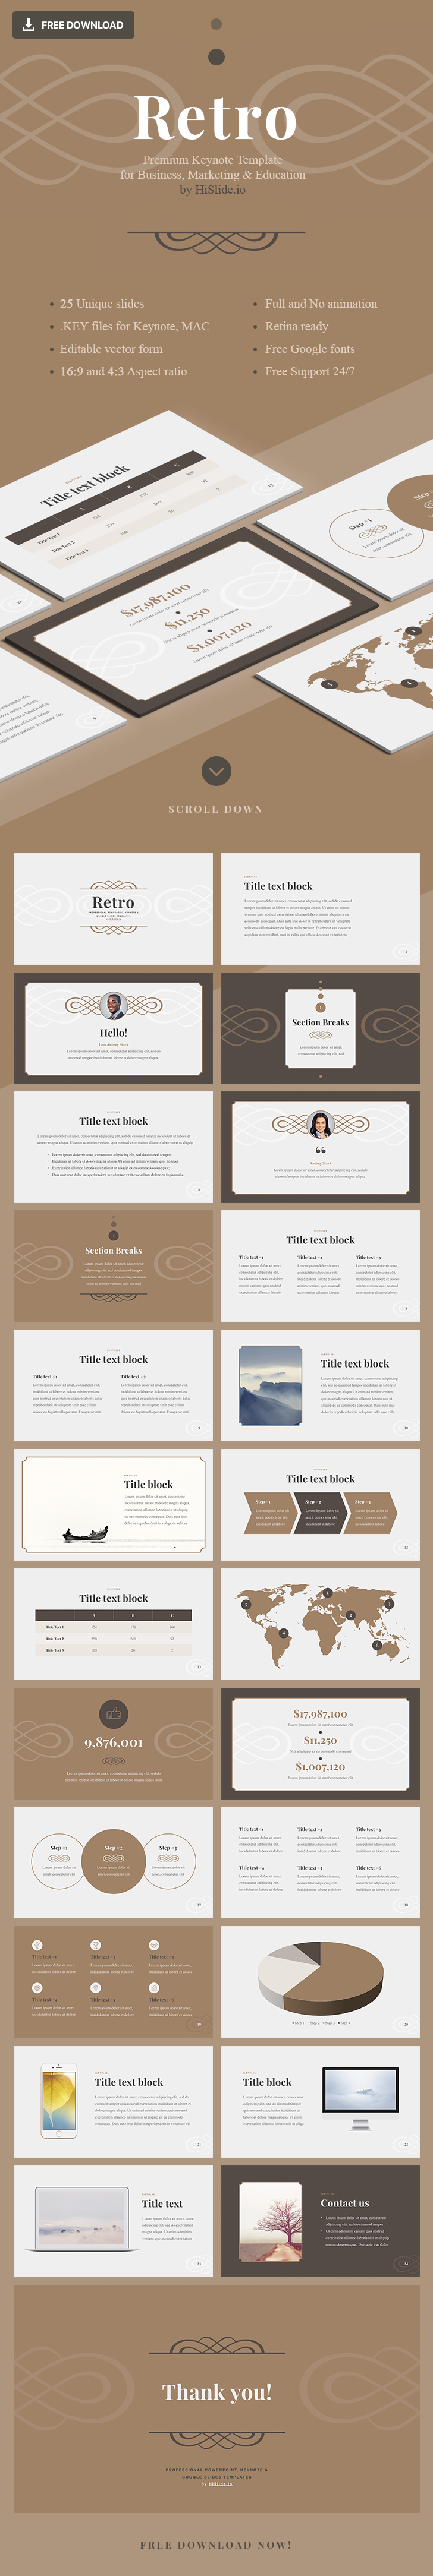 Free Retro templates for Keynote - Download Now!